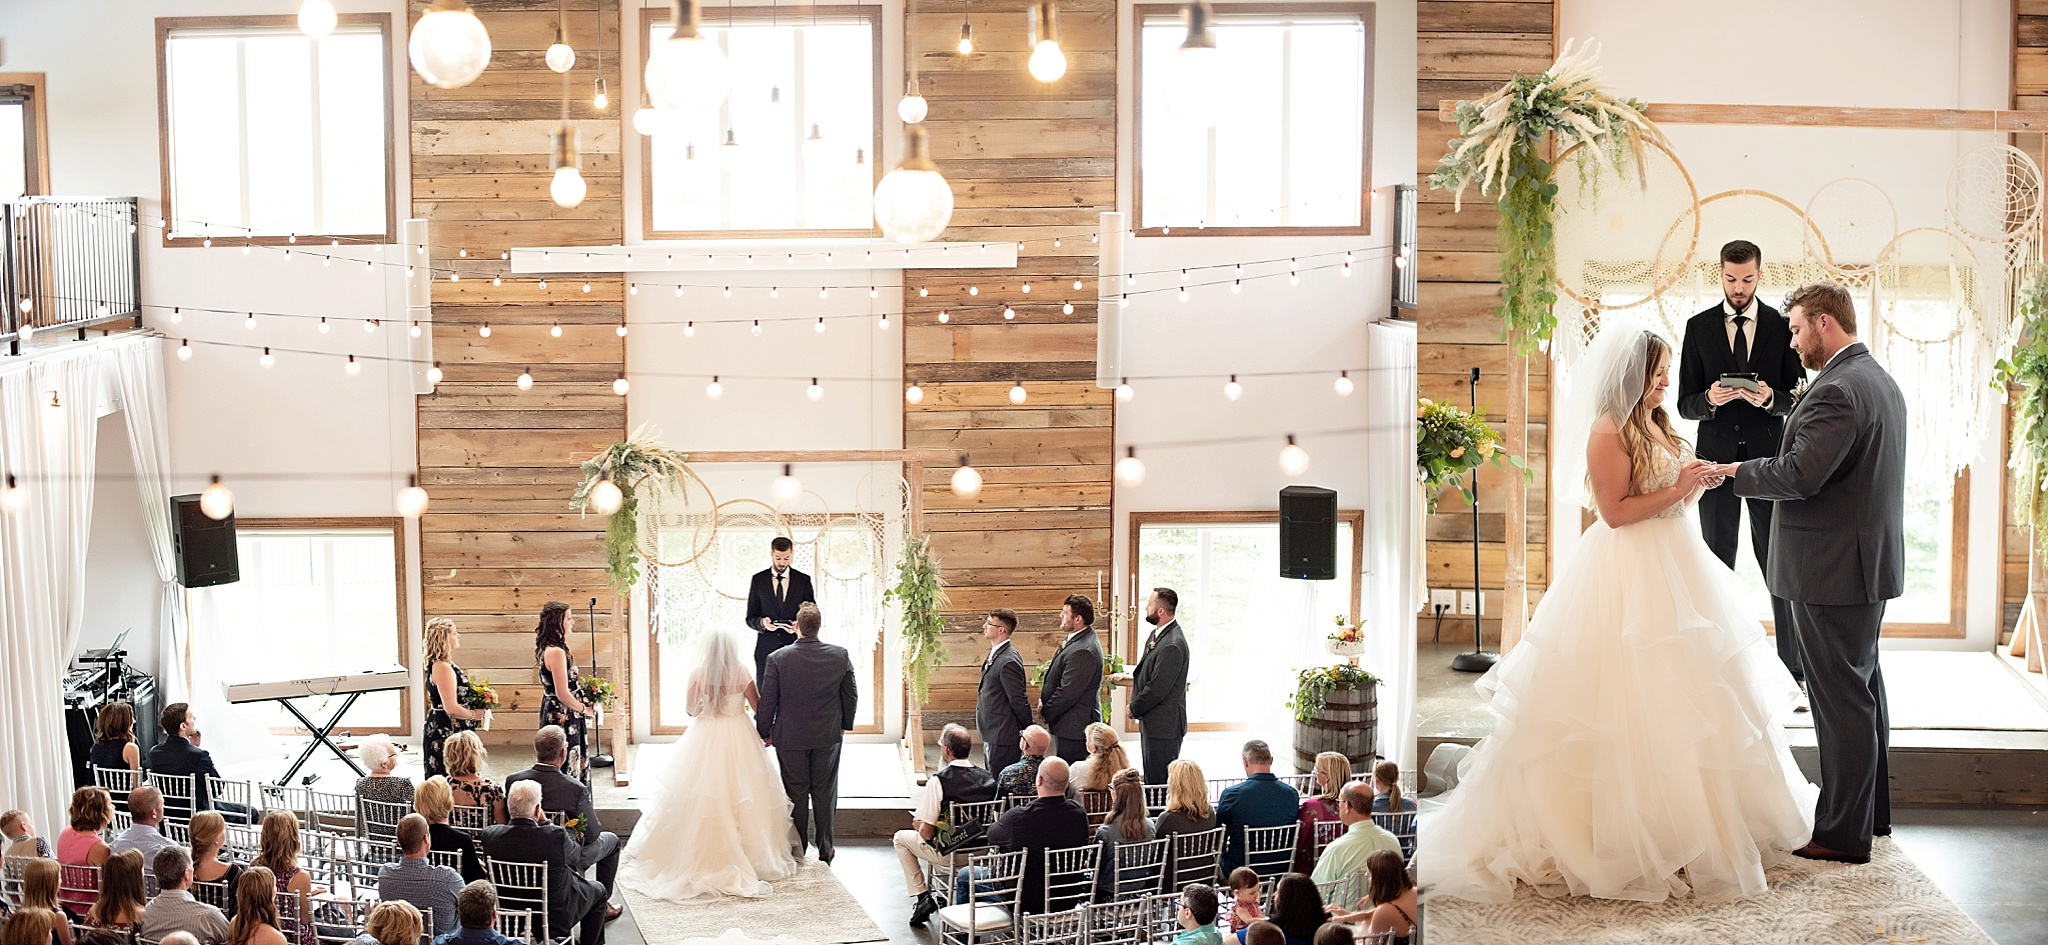 ceremony at blue haven barn